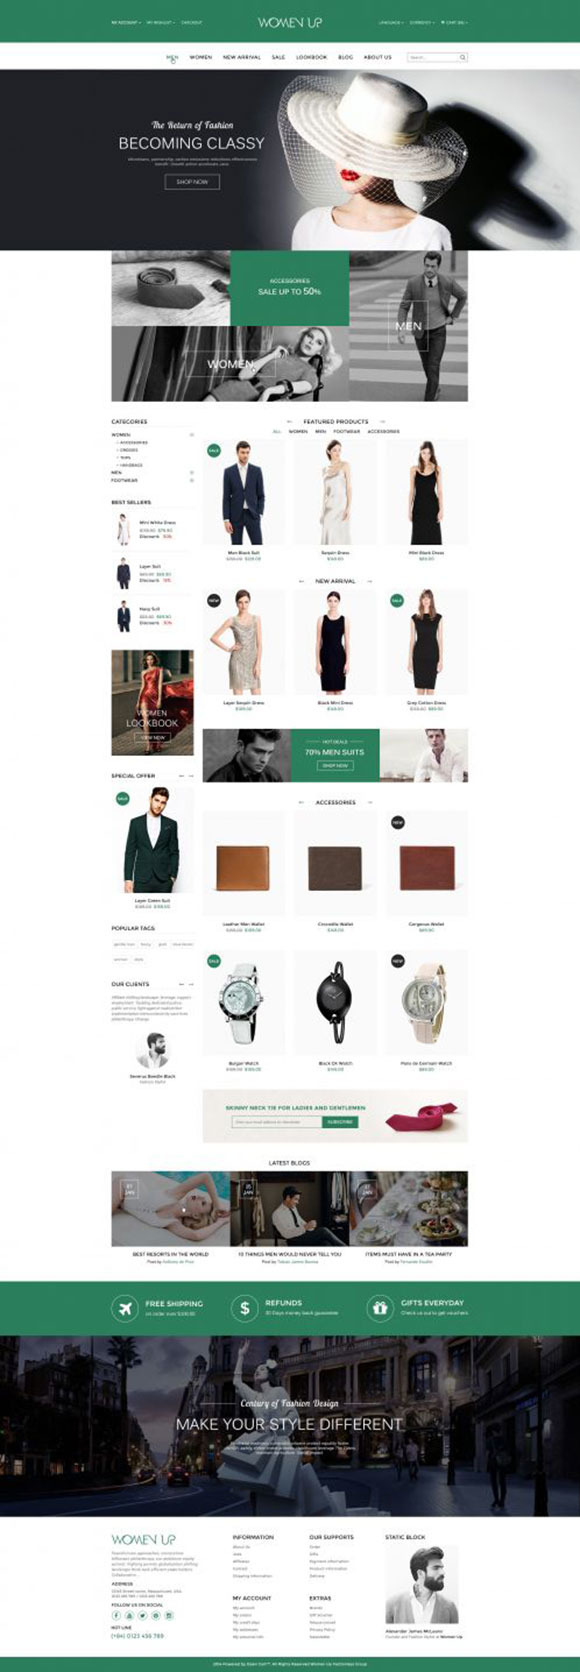 WomenUp Fashion Shopping Theme